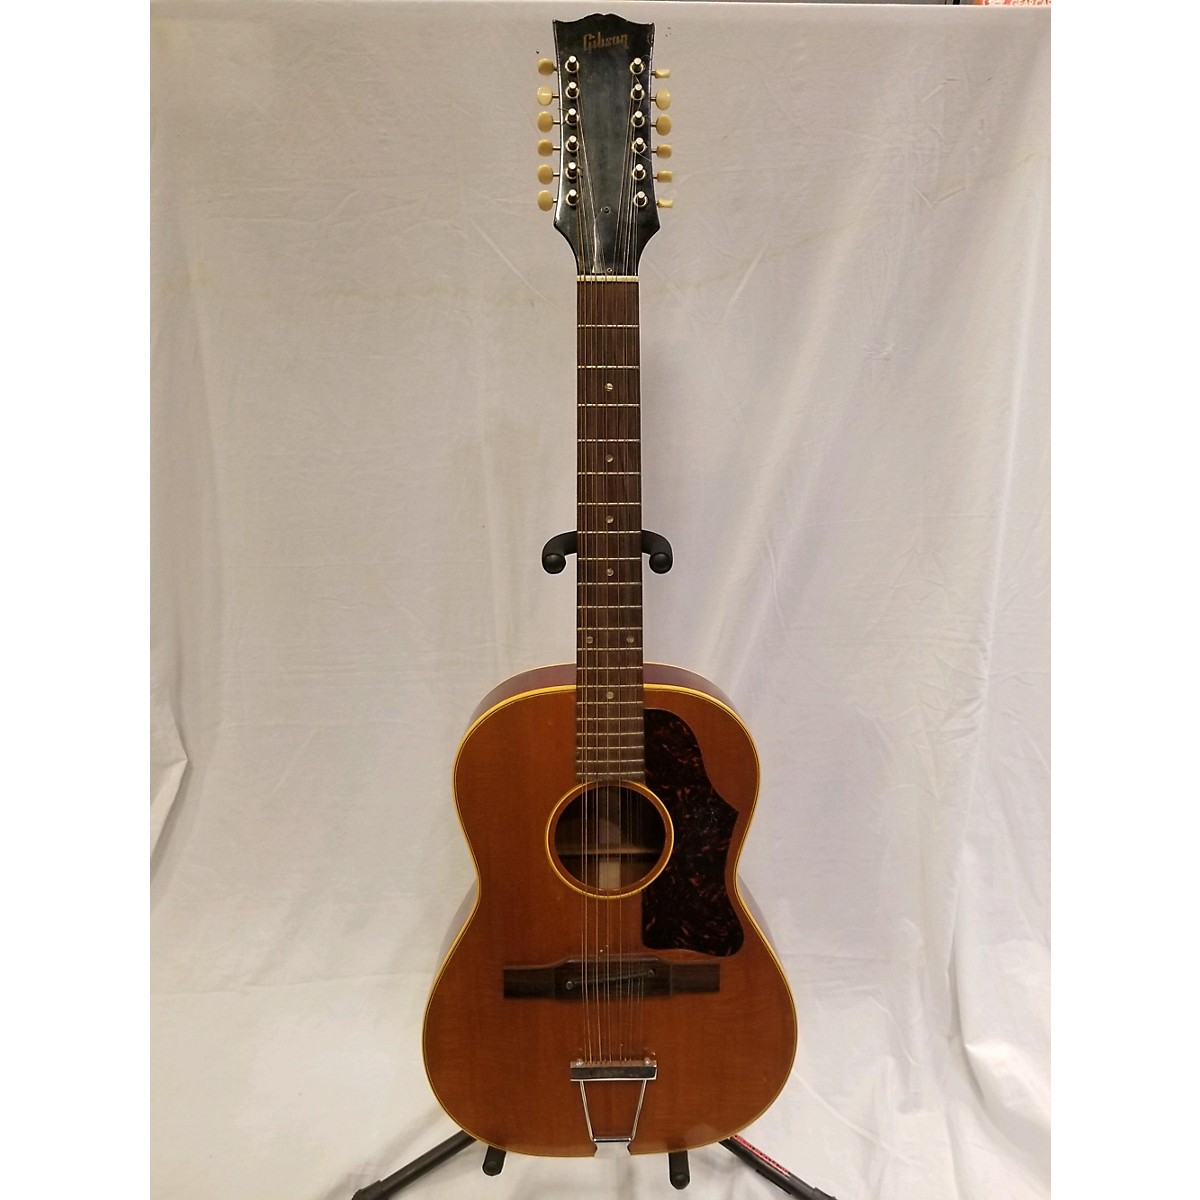 Gibson 1965 B2512 12 String Acoustic Guitar